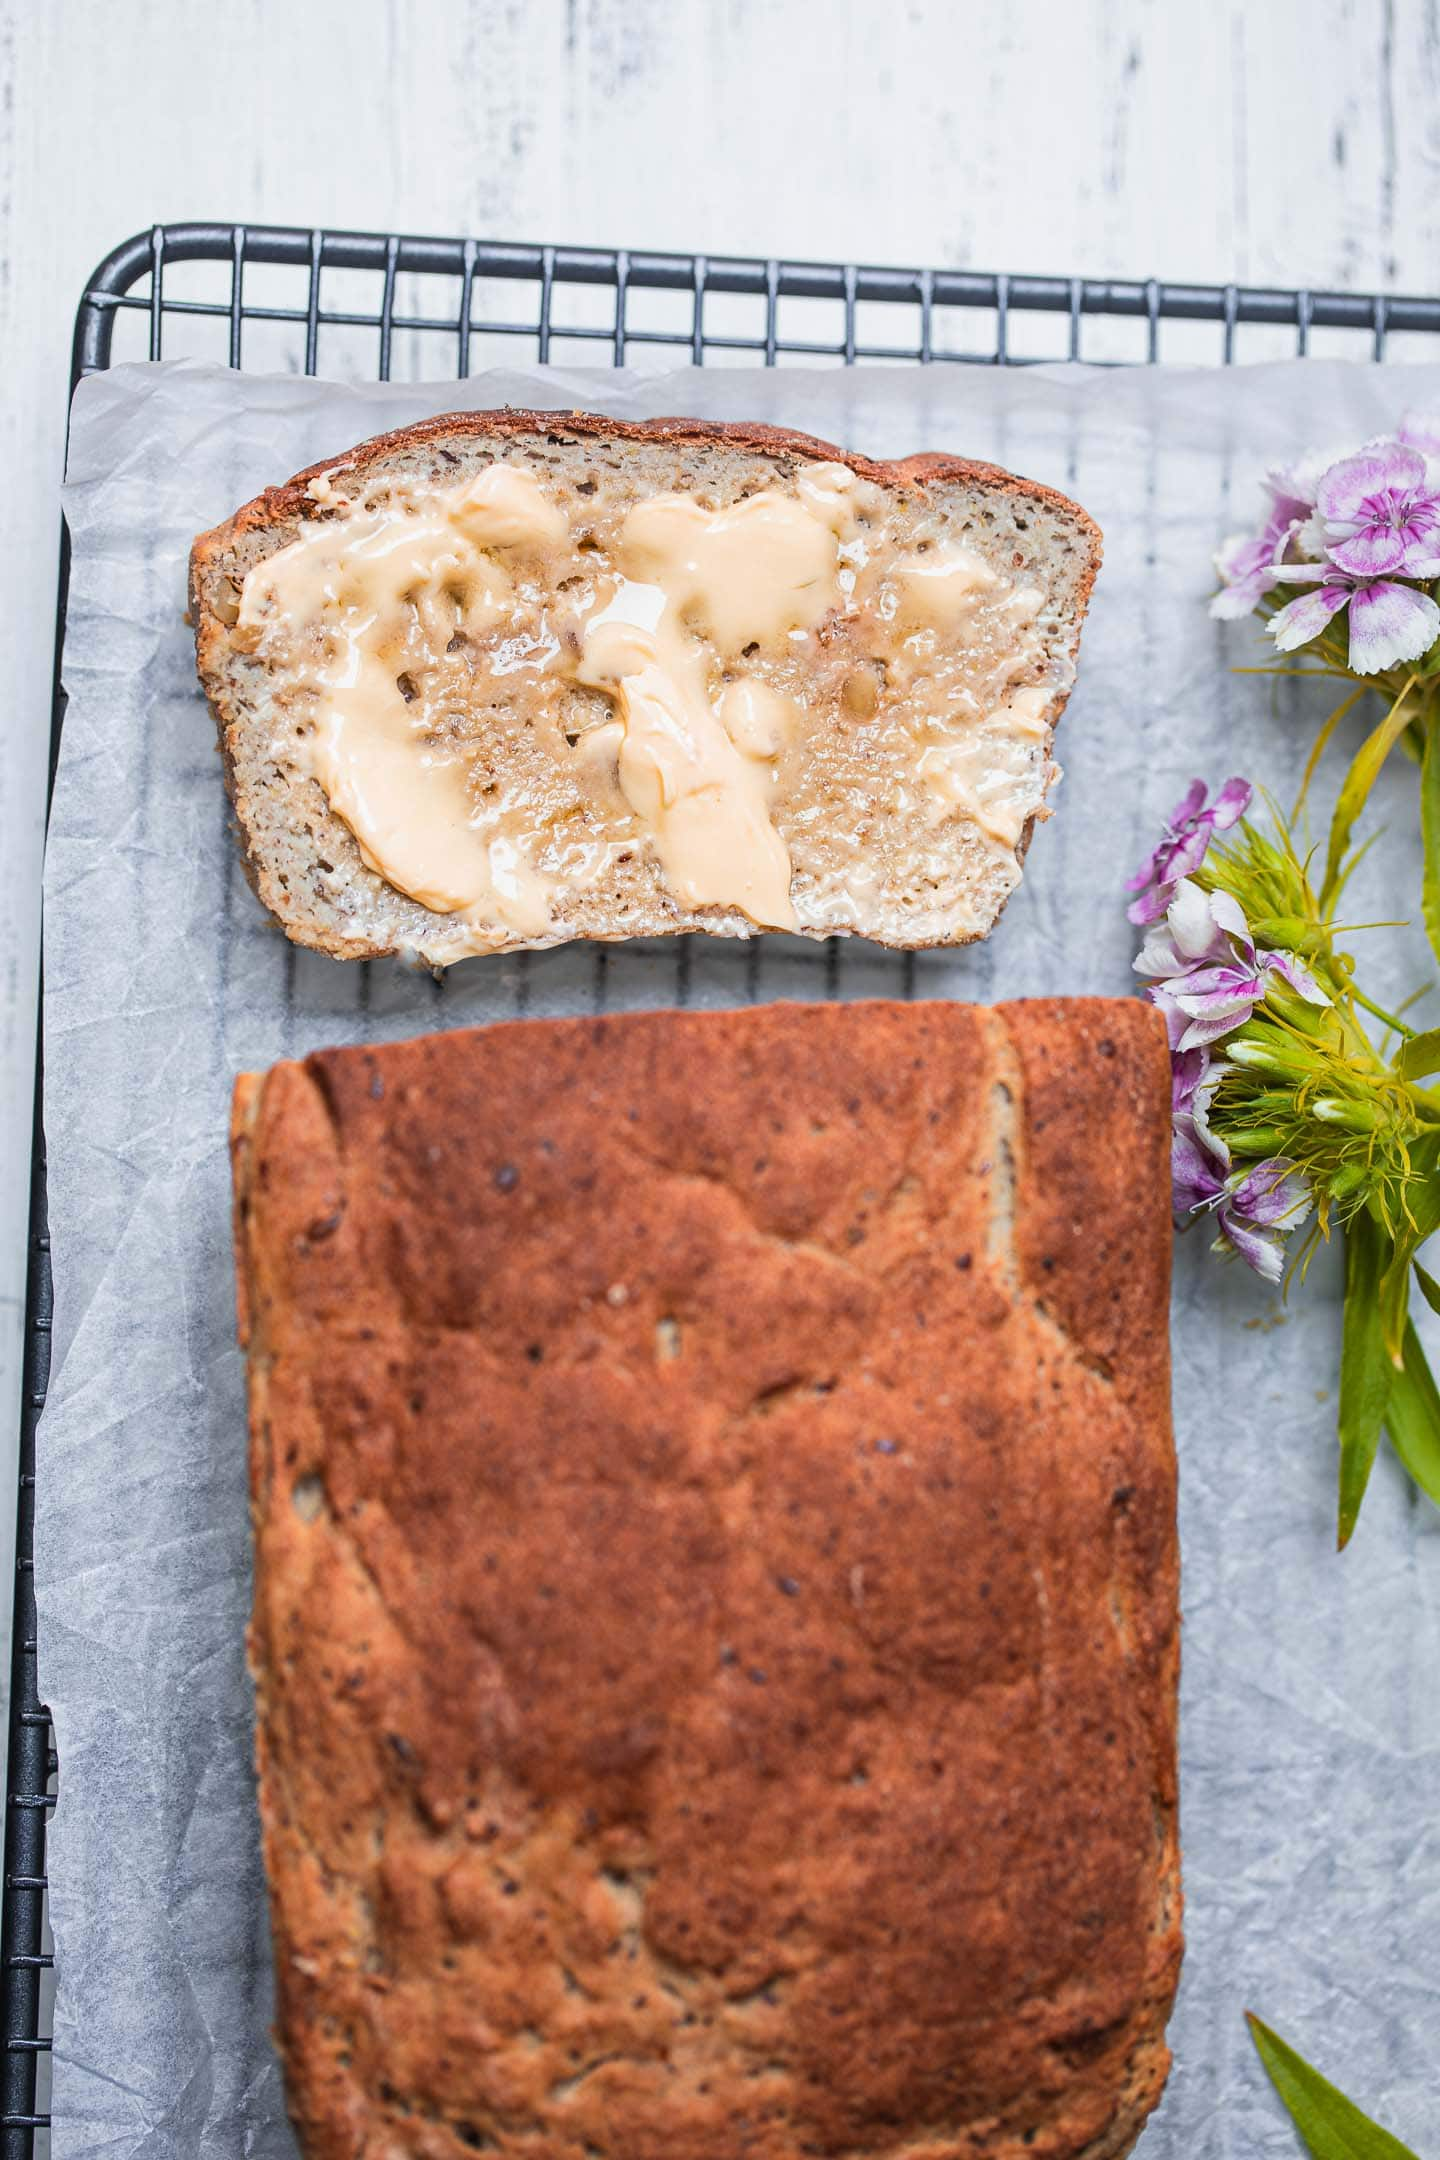 Gluten-free vegan bread with walnuts